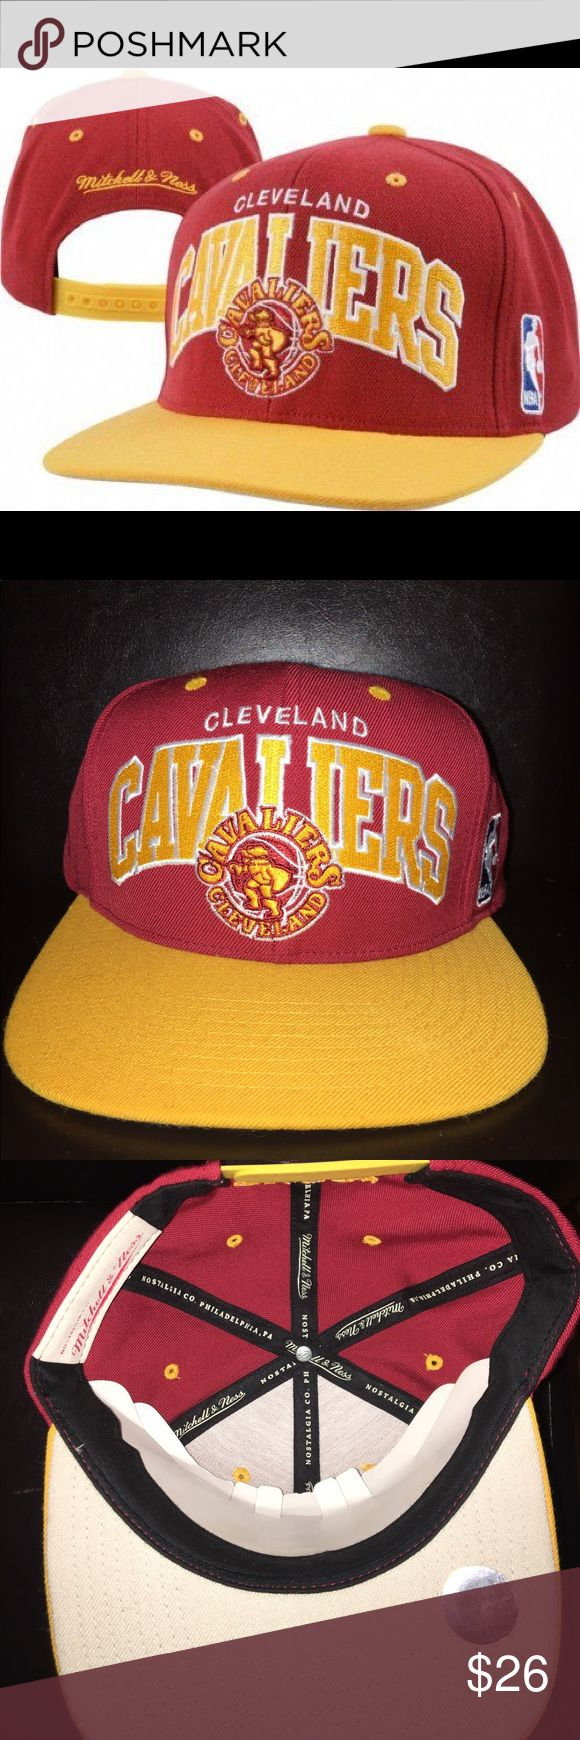 Cleveland Cavaliers Team Arch SnapBack In great condition, Cleveland Cavaliers Team Arch SnapBack Mitchell & Ness Accessories Hats